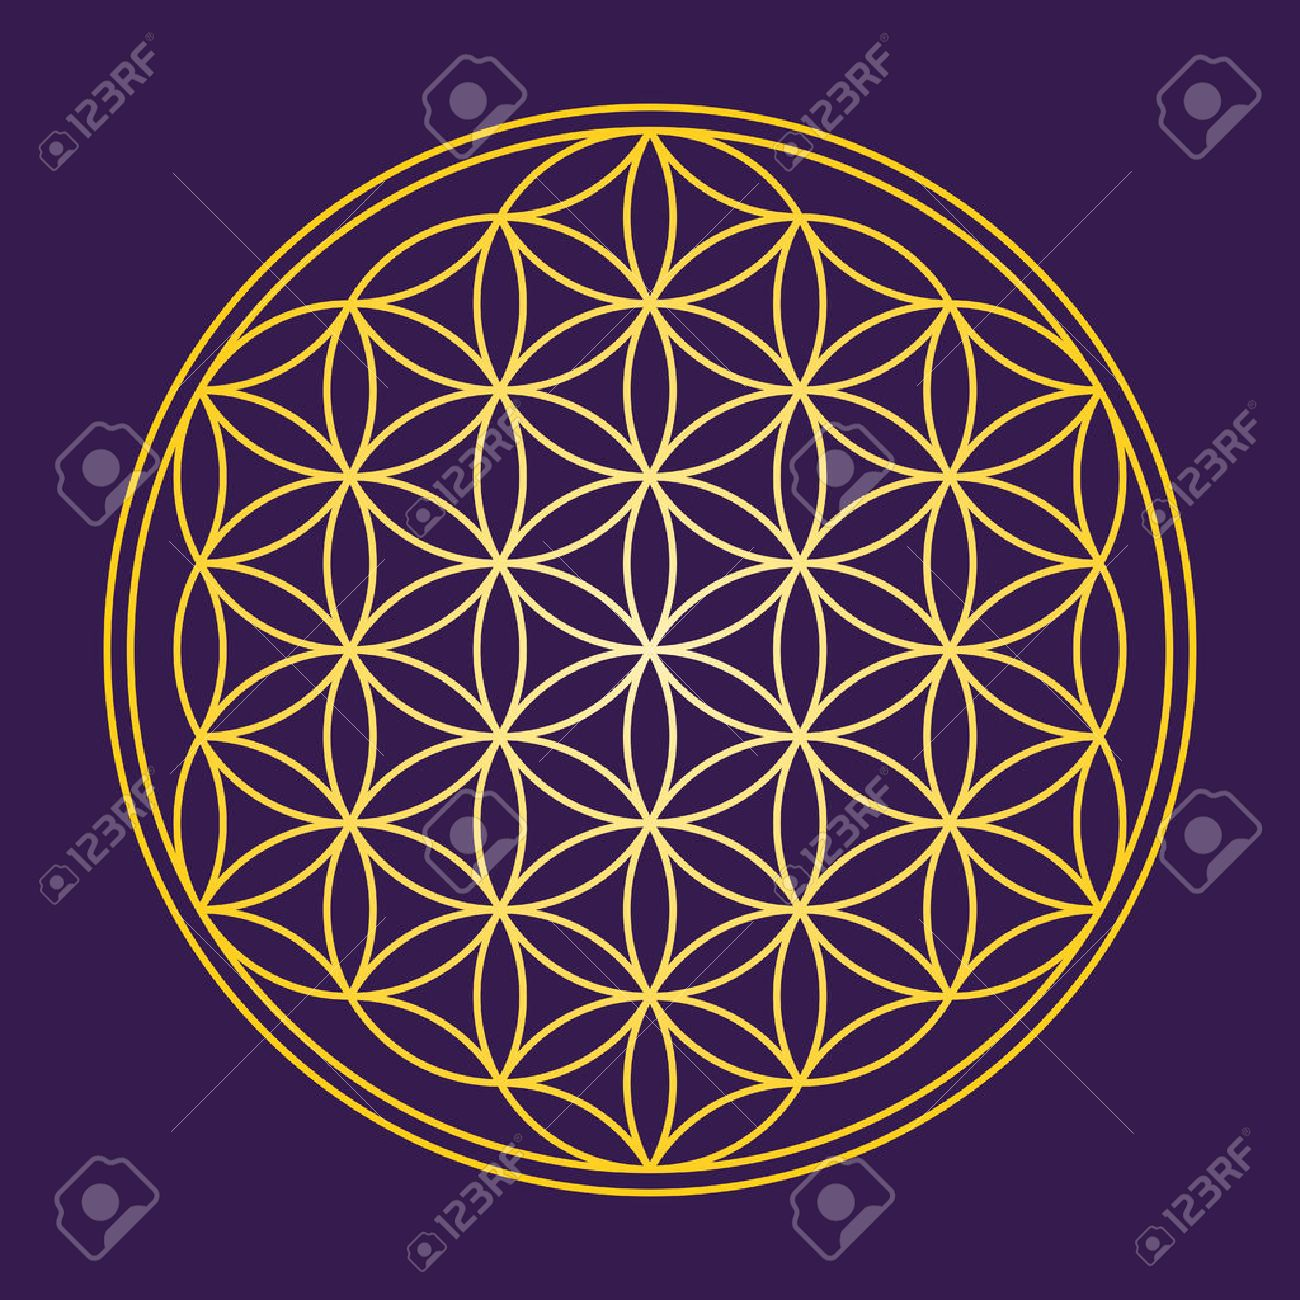 Flower of Life - Gold on dark purple background - a geometrical figure, composed of multiple evenly-spaced, overlapping circles. A strong symbol since ancient times, forming a flower-like pattern. Standard-Bild - 52545866